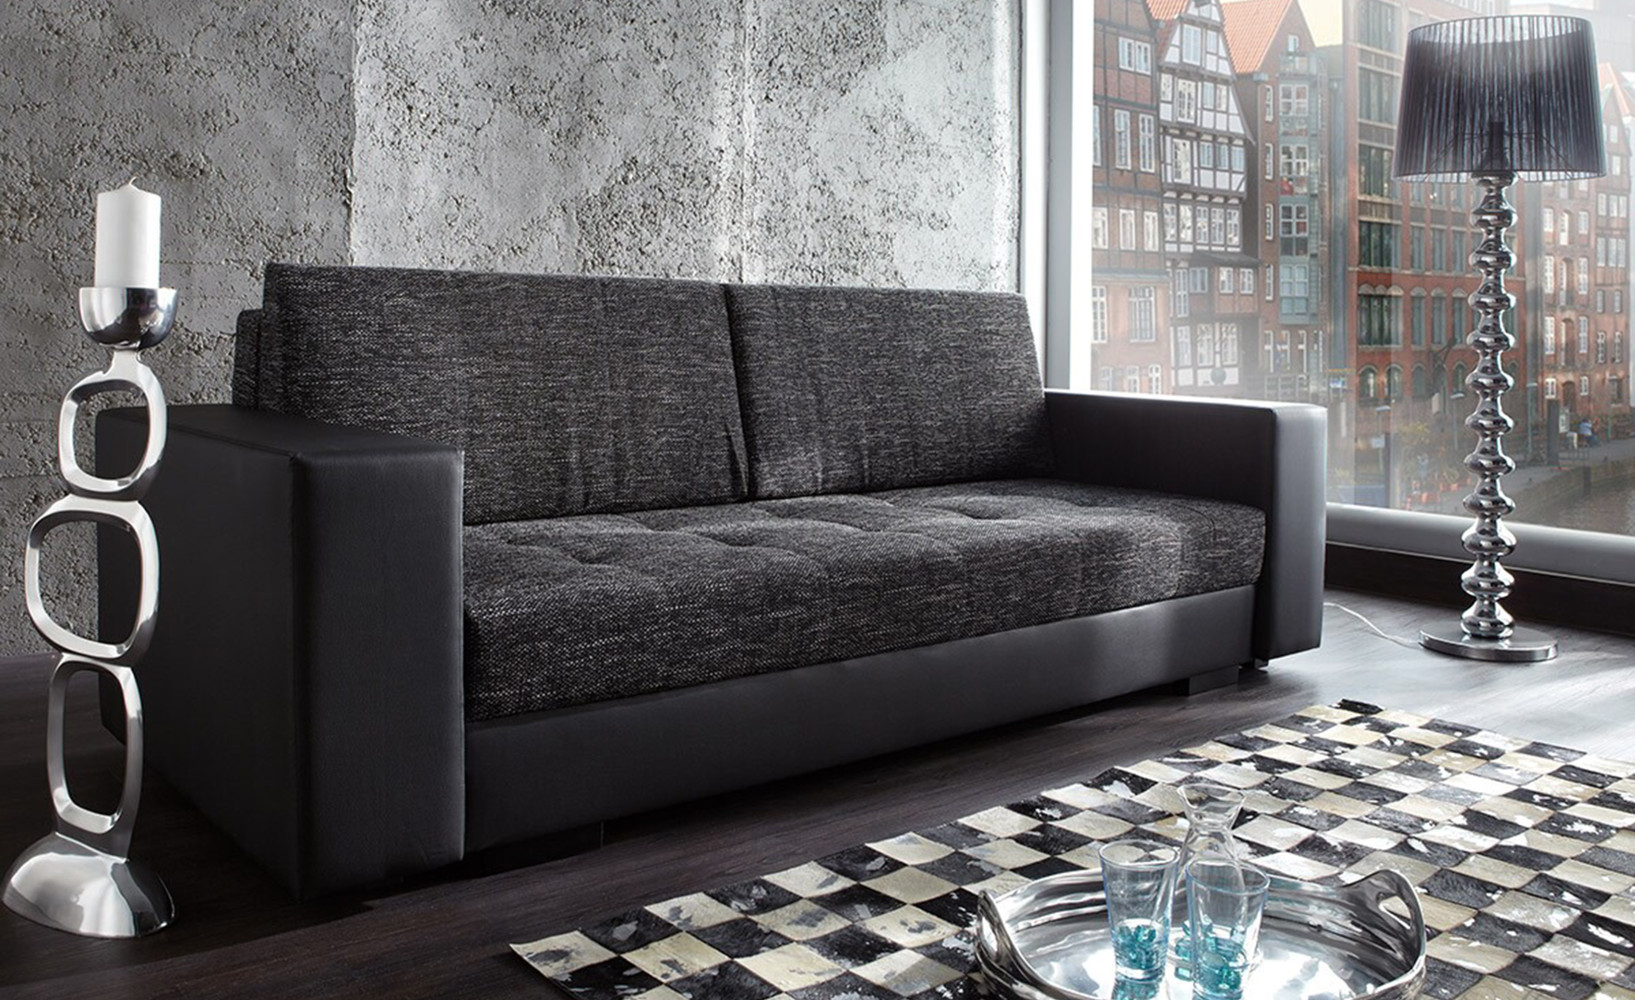 das richtige schlafsofa finden. Black Bedroom Furniture Sets. Home Design Ideas